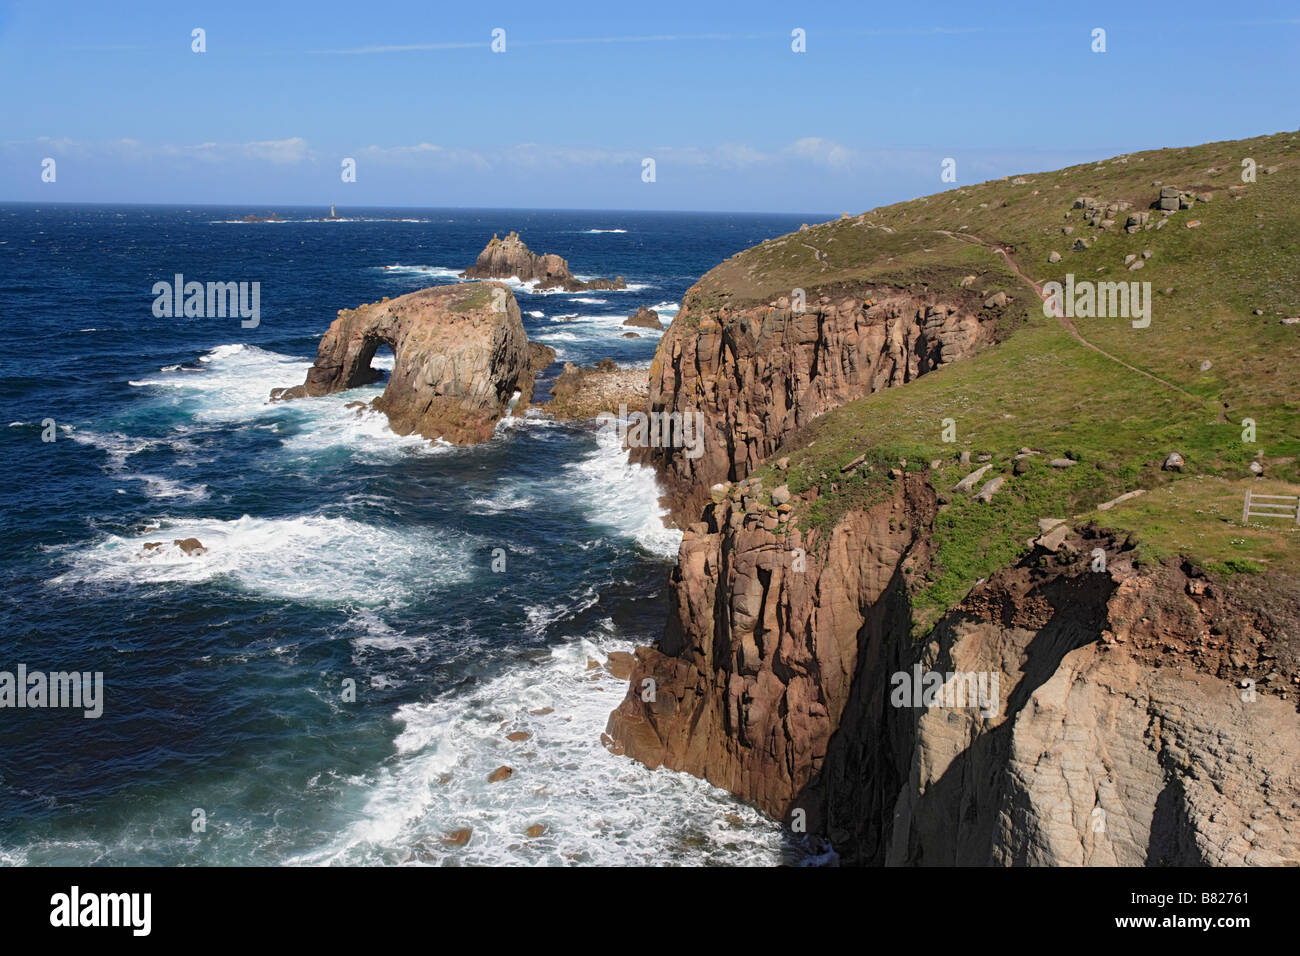 Land s End Penwith Penisnula Cornwall England United Kingdom - Stock Image